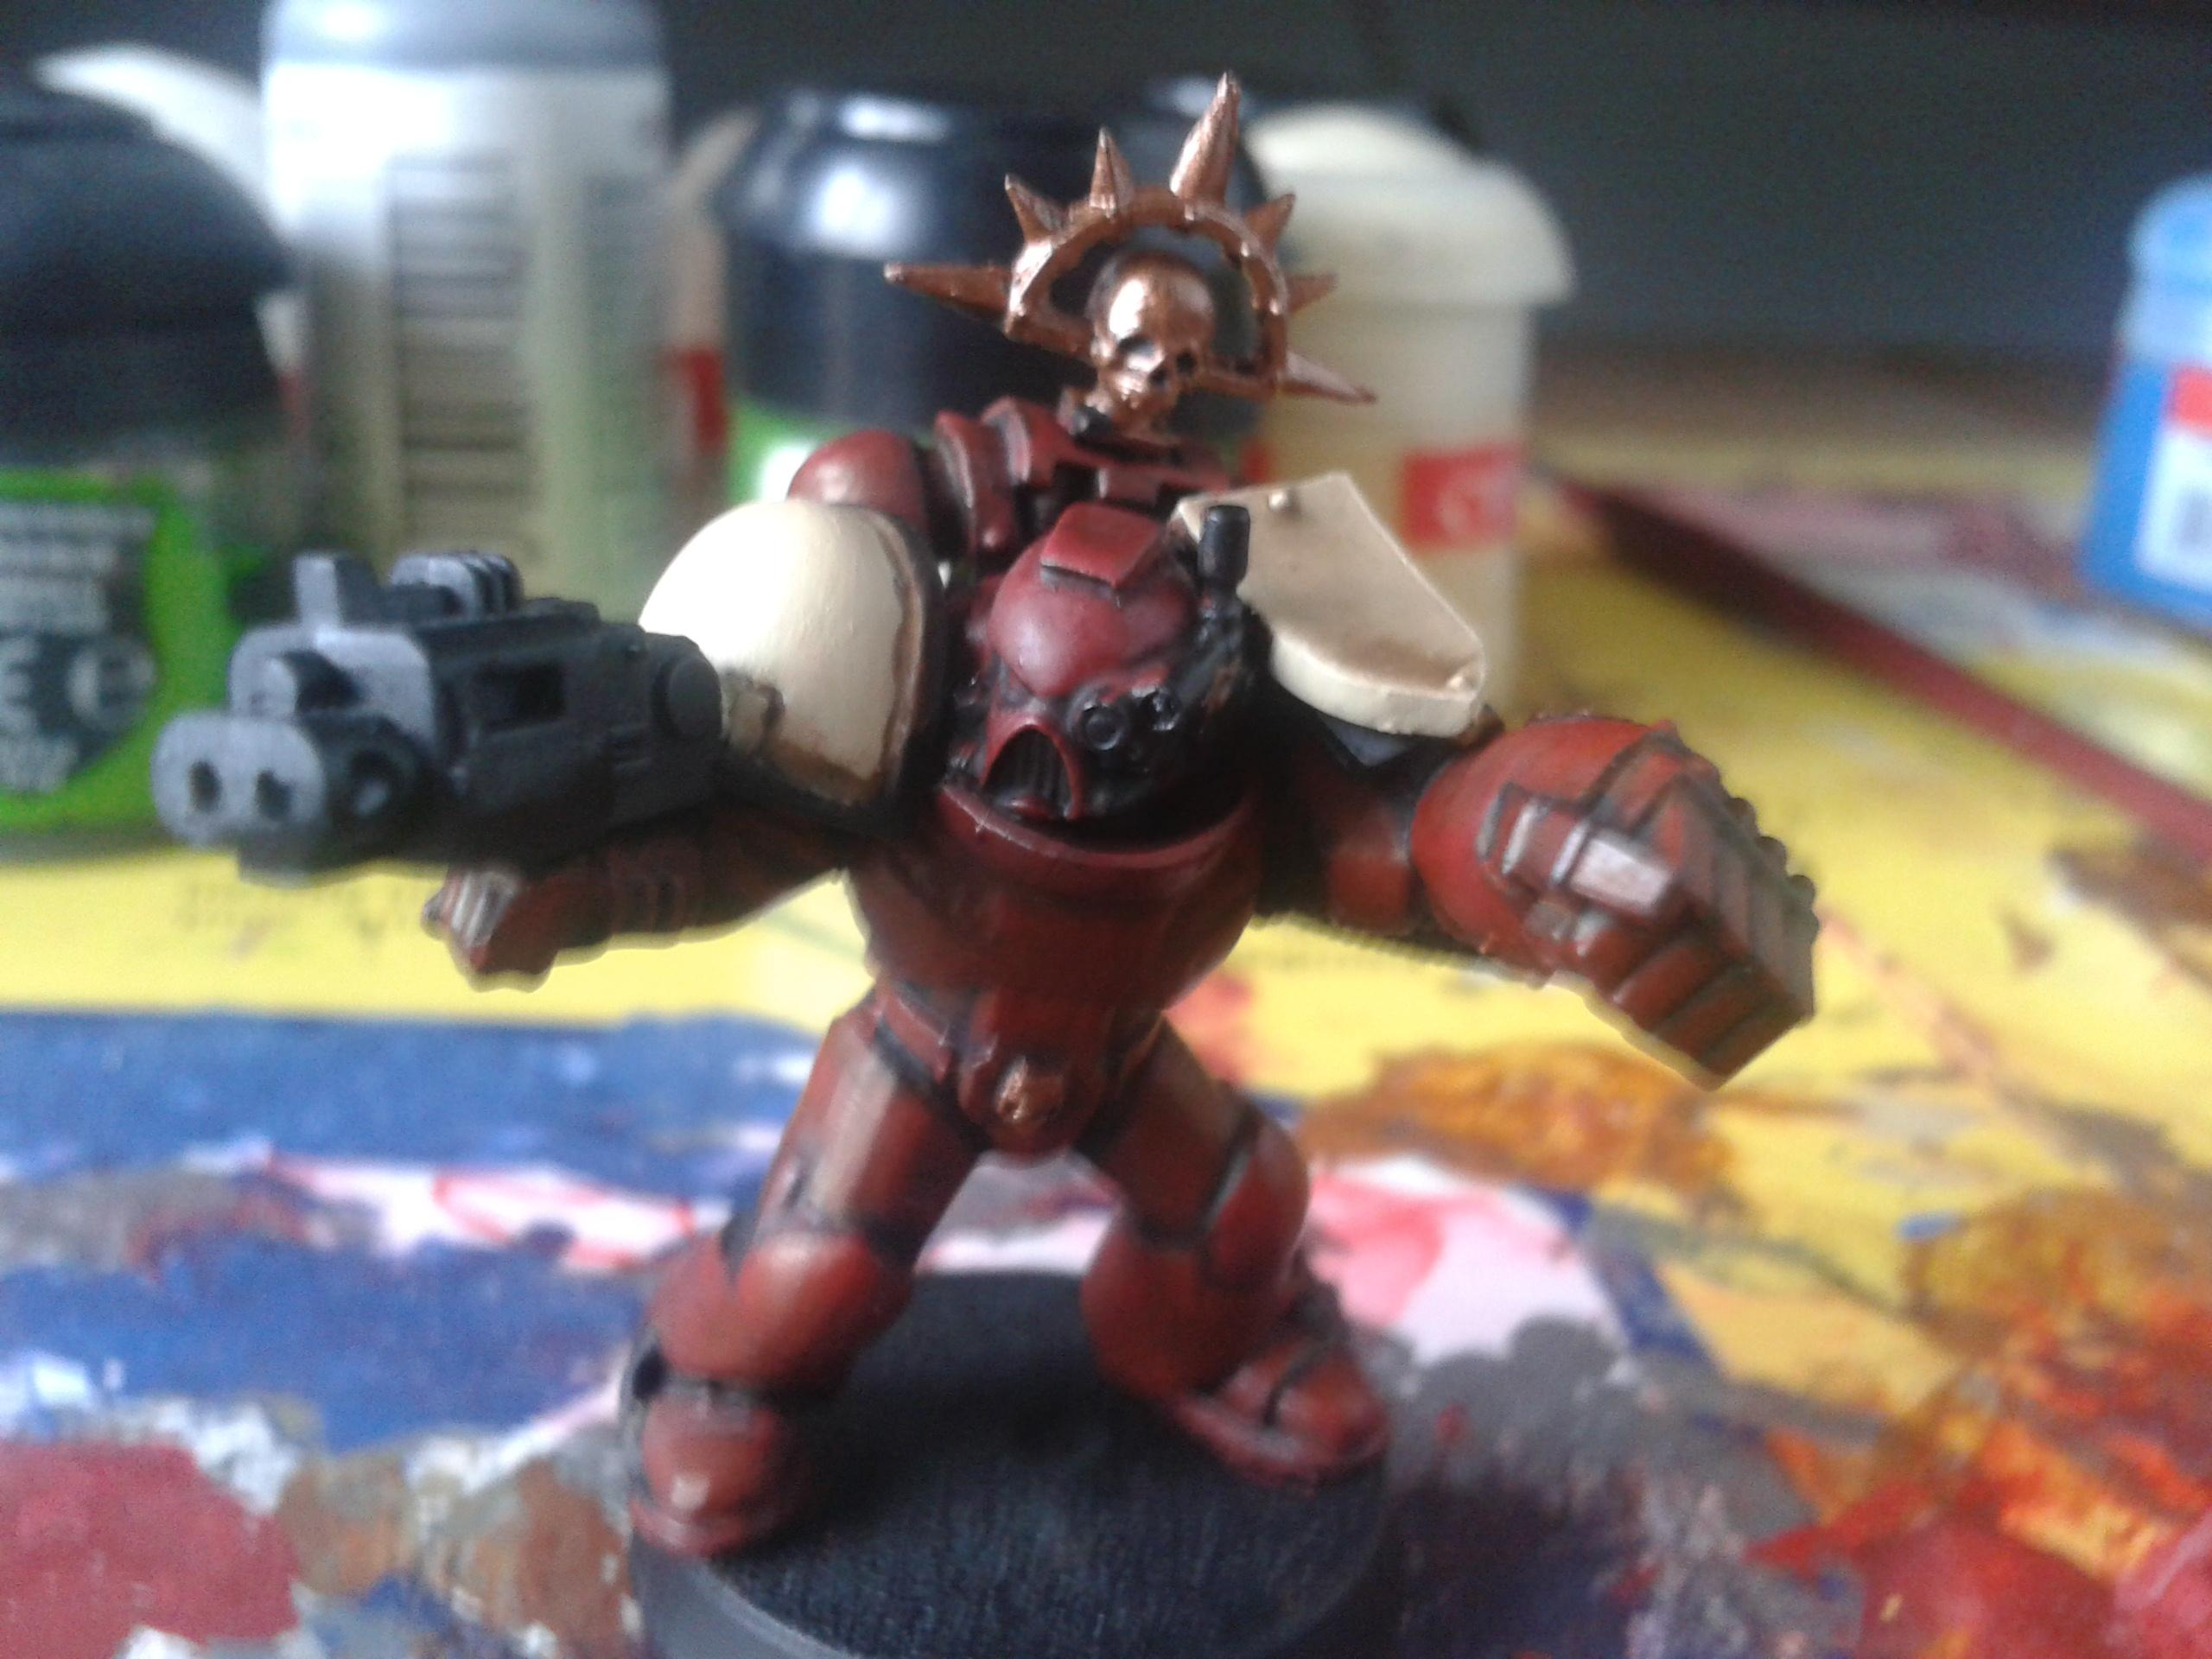 Captain, Chapter Master, Conversion, Pedro Kantor, Power Fist, Scratch Build, Work In Progress